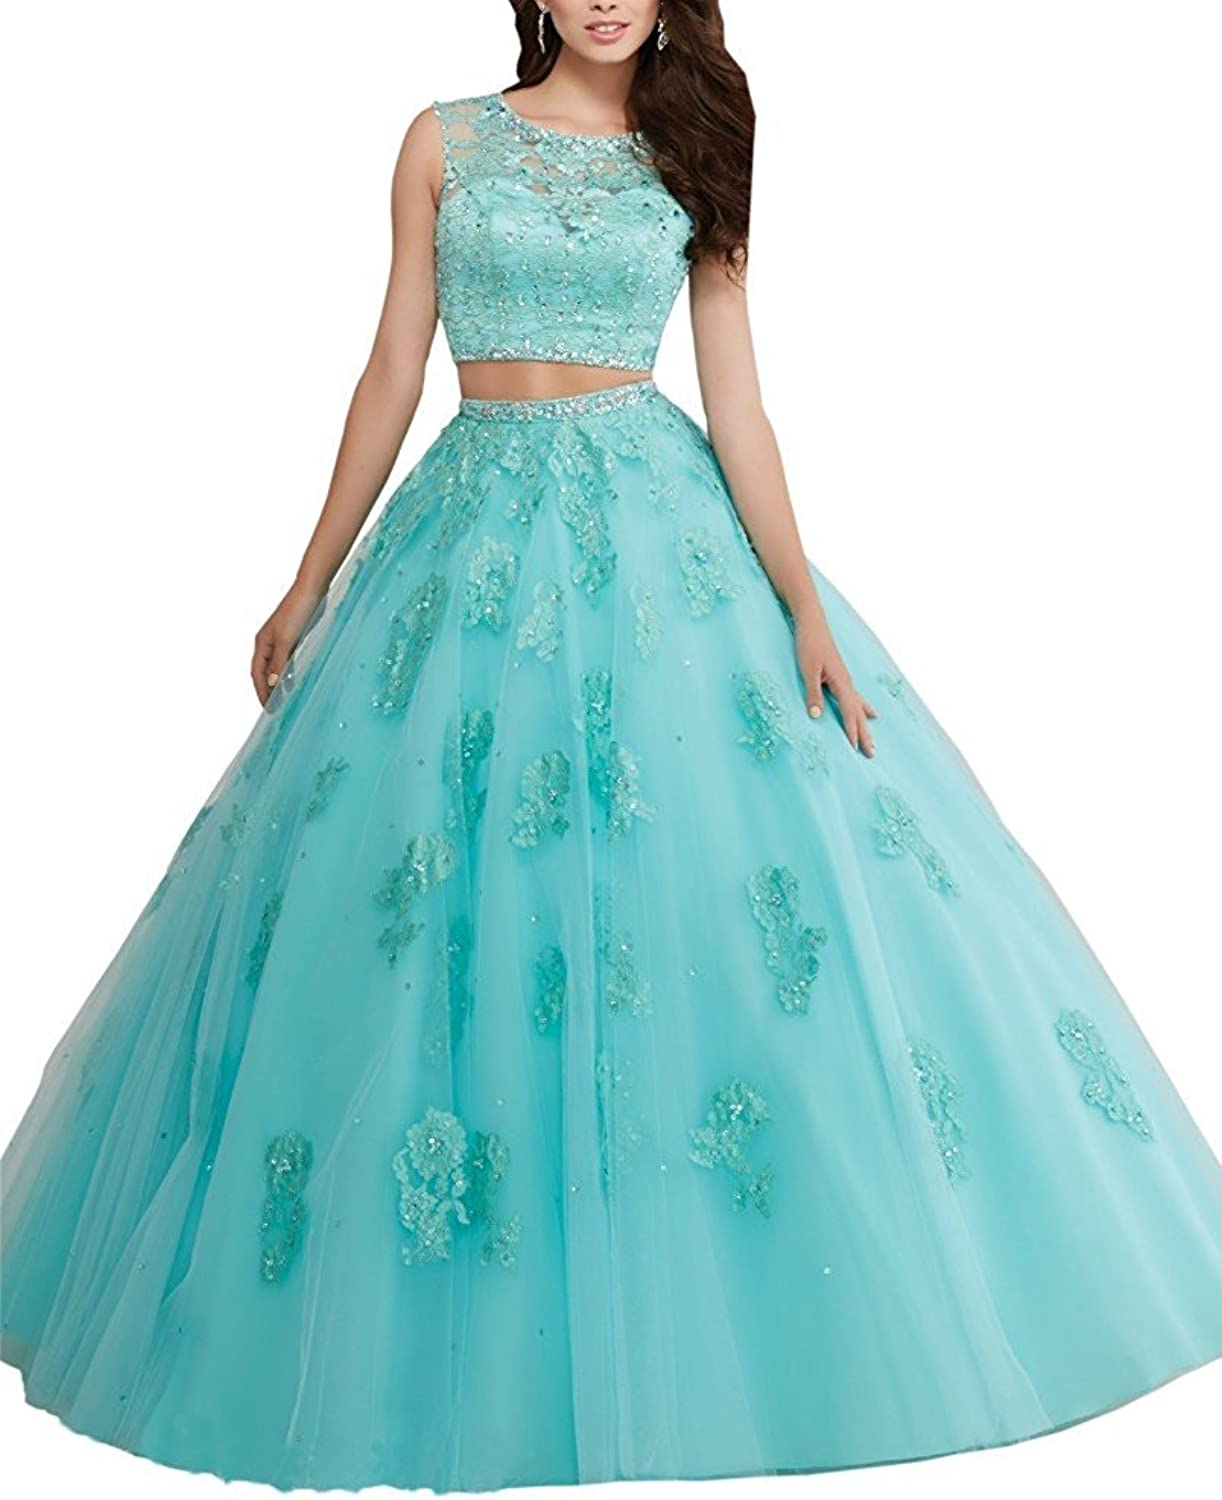 Changjie Women's 2017 Two Piece Prom Ball Gown Lace Applique Quinceanera Dresses